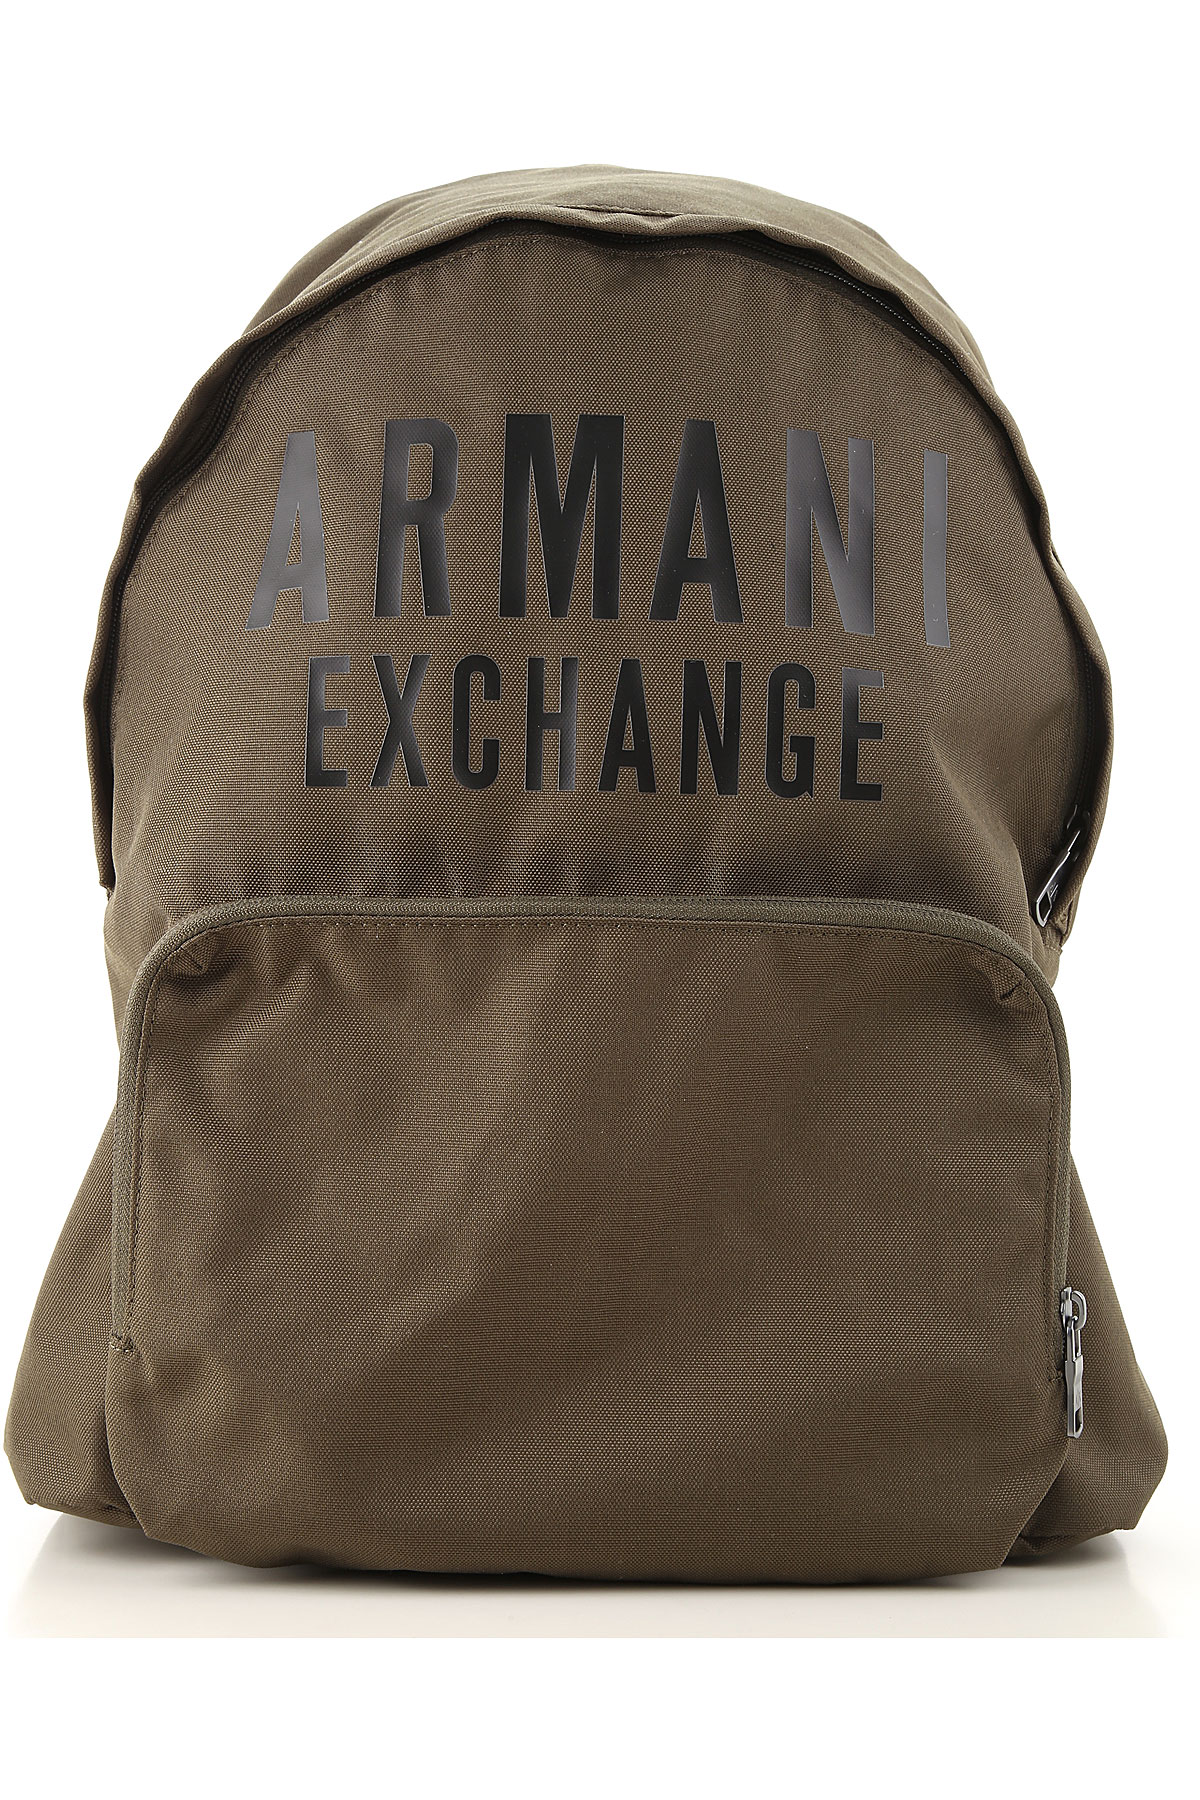 Armani Exchange Backpack for Men On Sale, Military Green, polyester, 2019